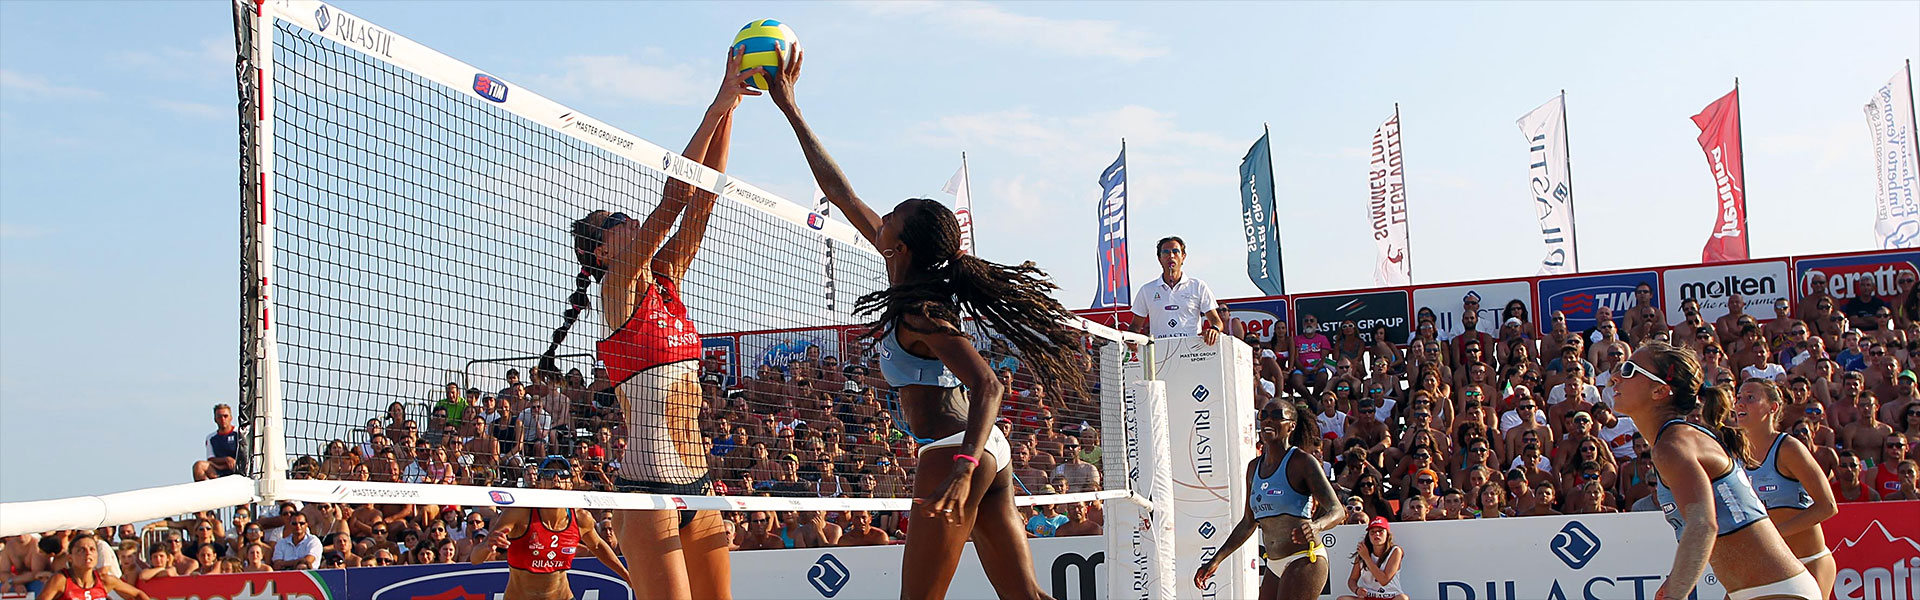 jesolo-beach-volley